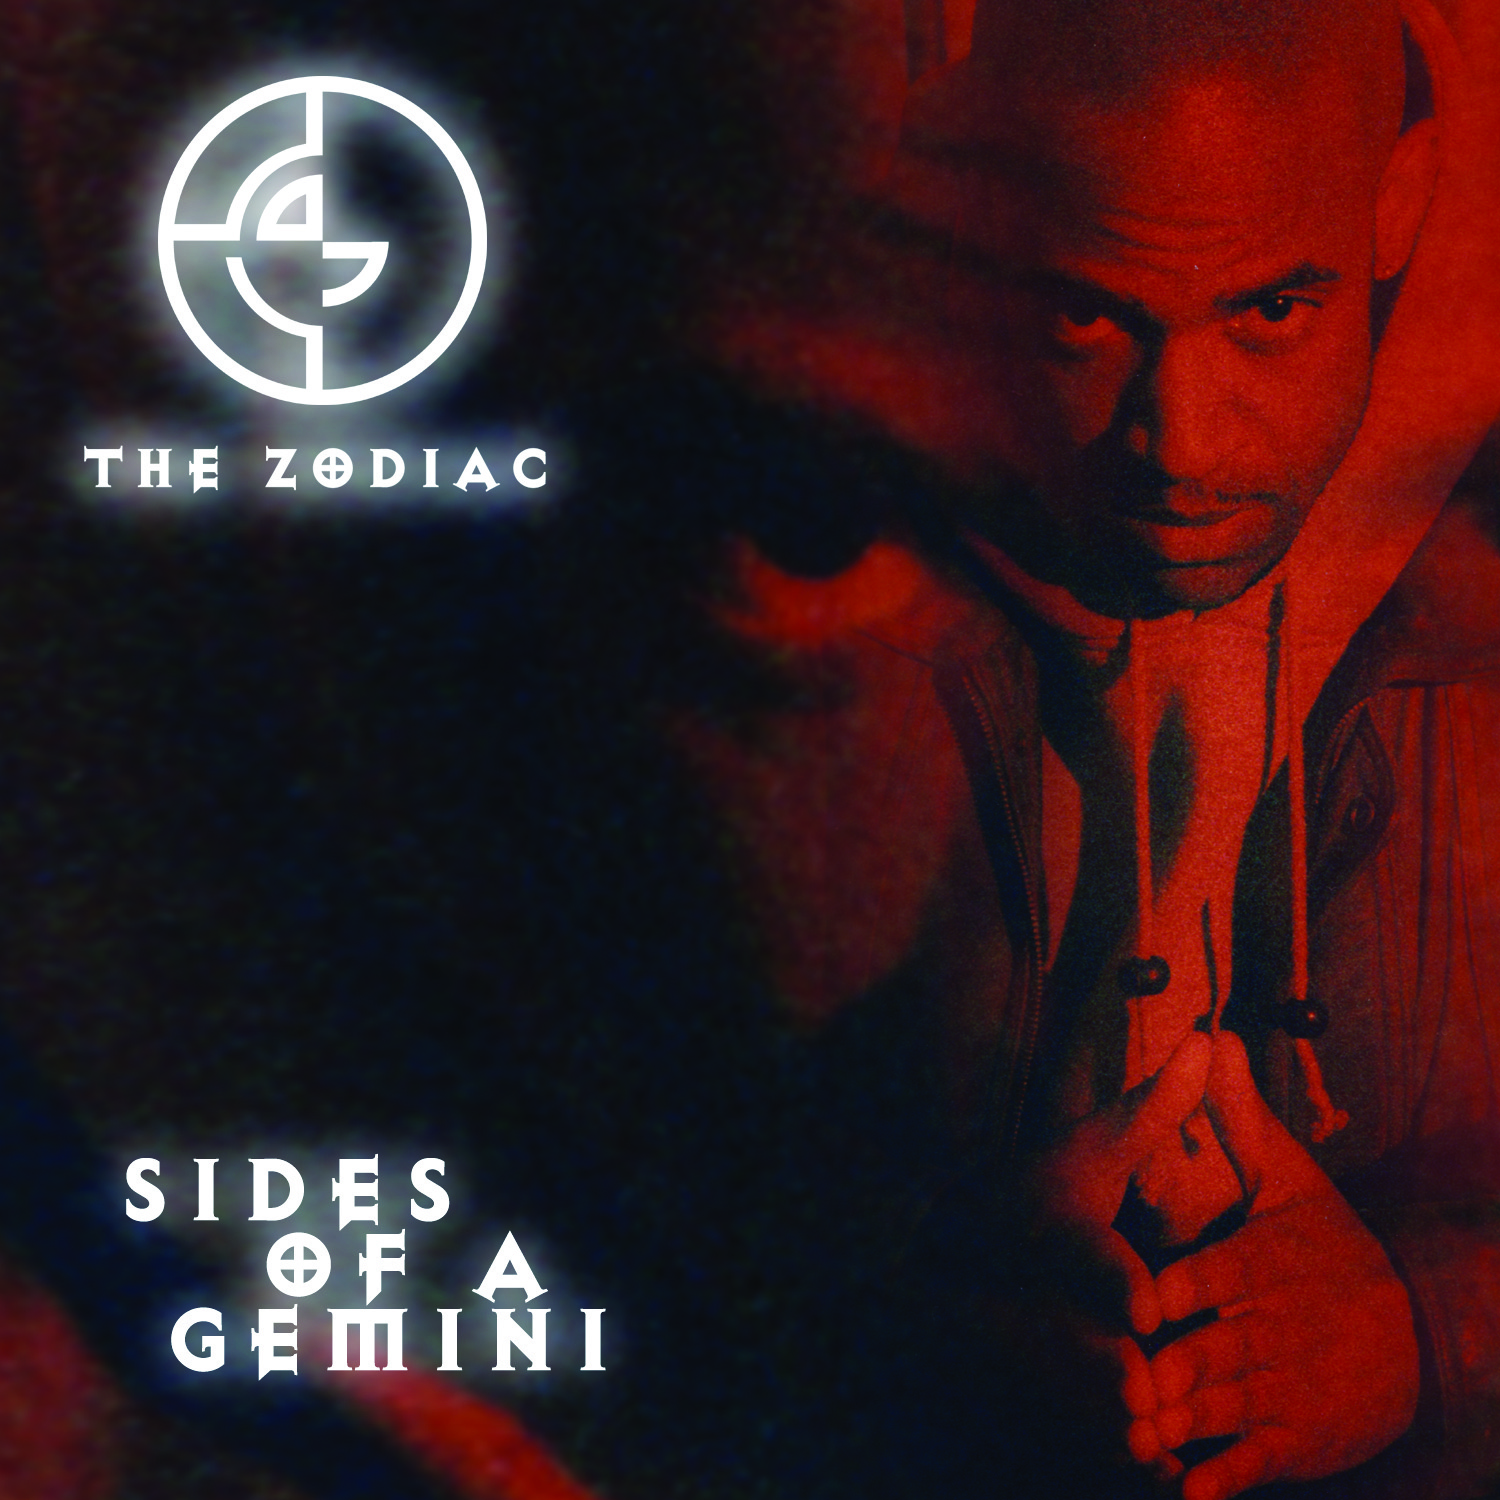 Sides of a Gemini